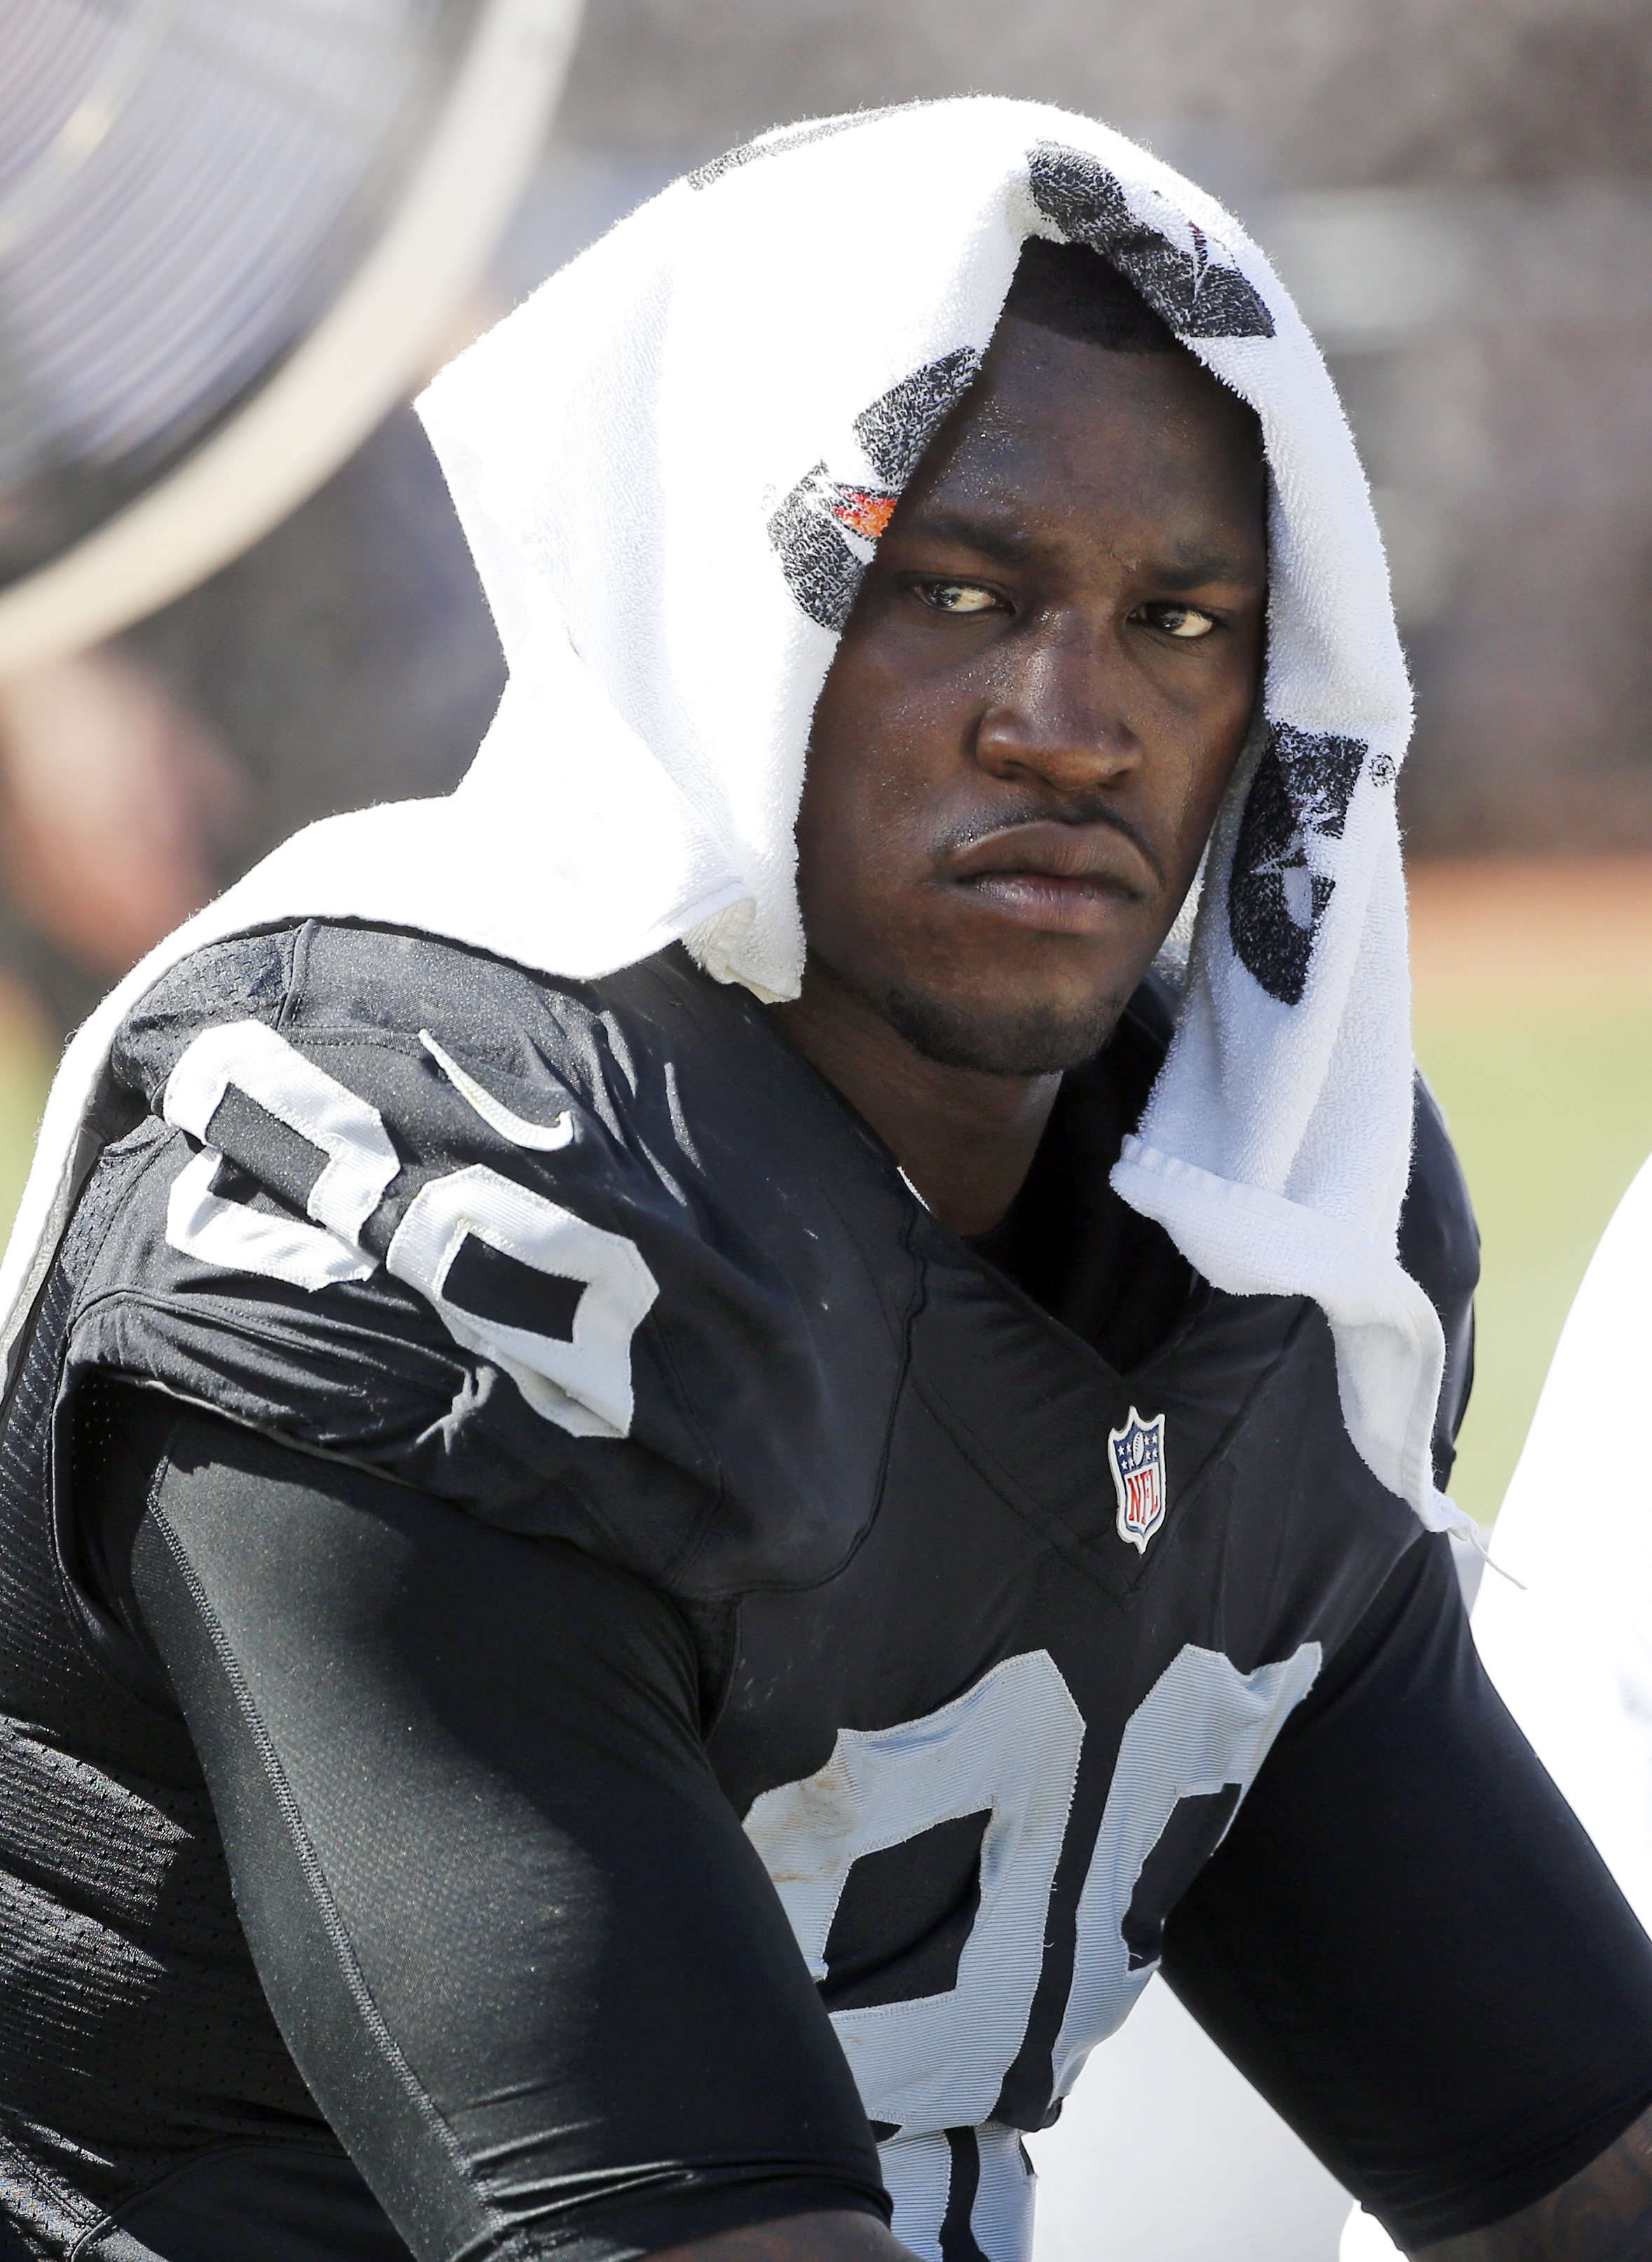 Oakland Raiders defensive end Aldon Smith (99) cools off during an NFL football game against the Baltimore Ravens Sunday, Sept. 20, 2015, in Oakland , Calif. (AP Photo/Tony Avelar)